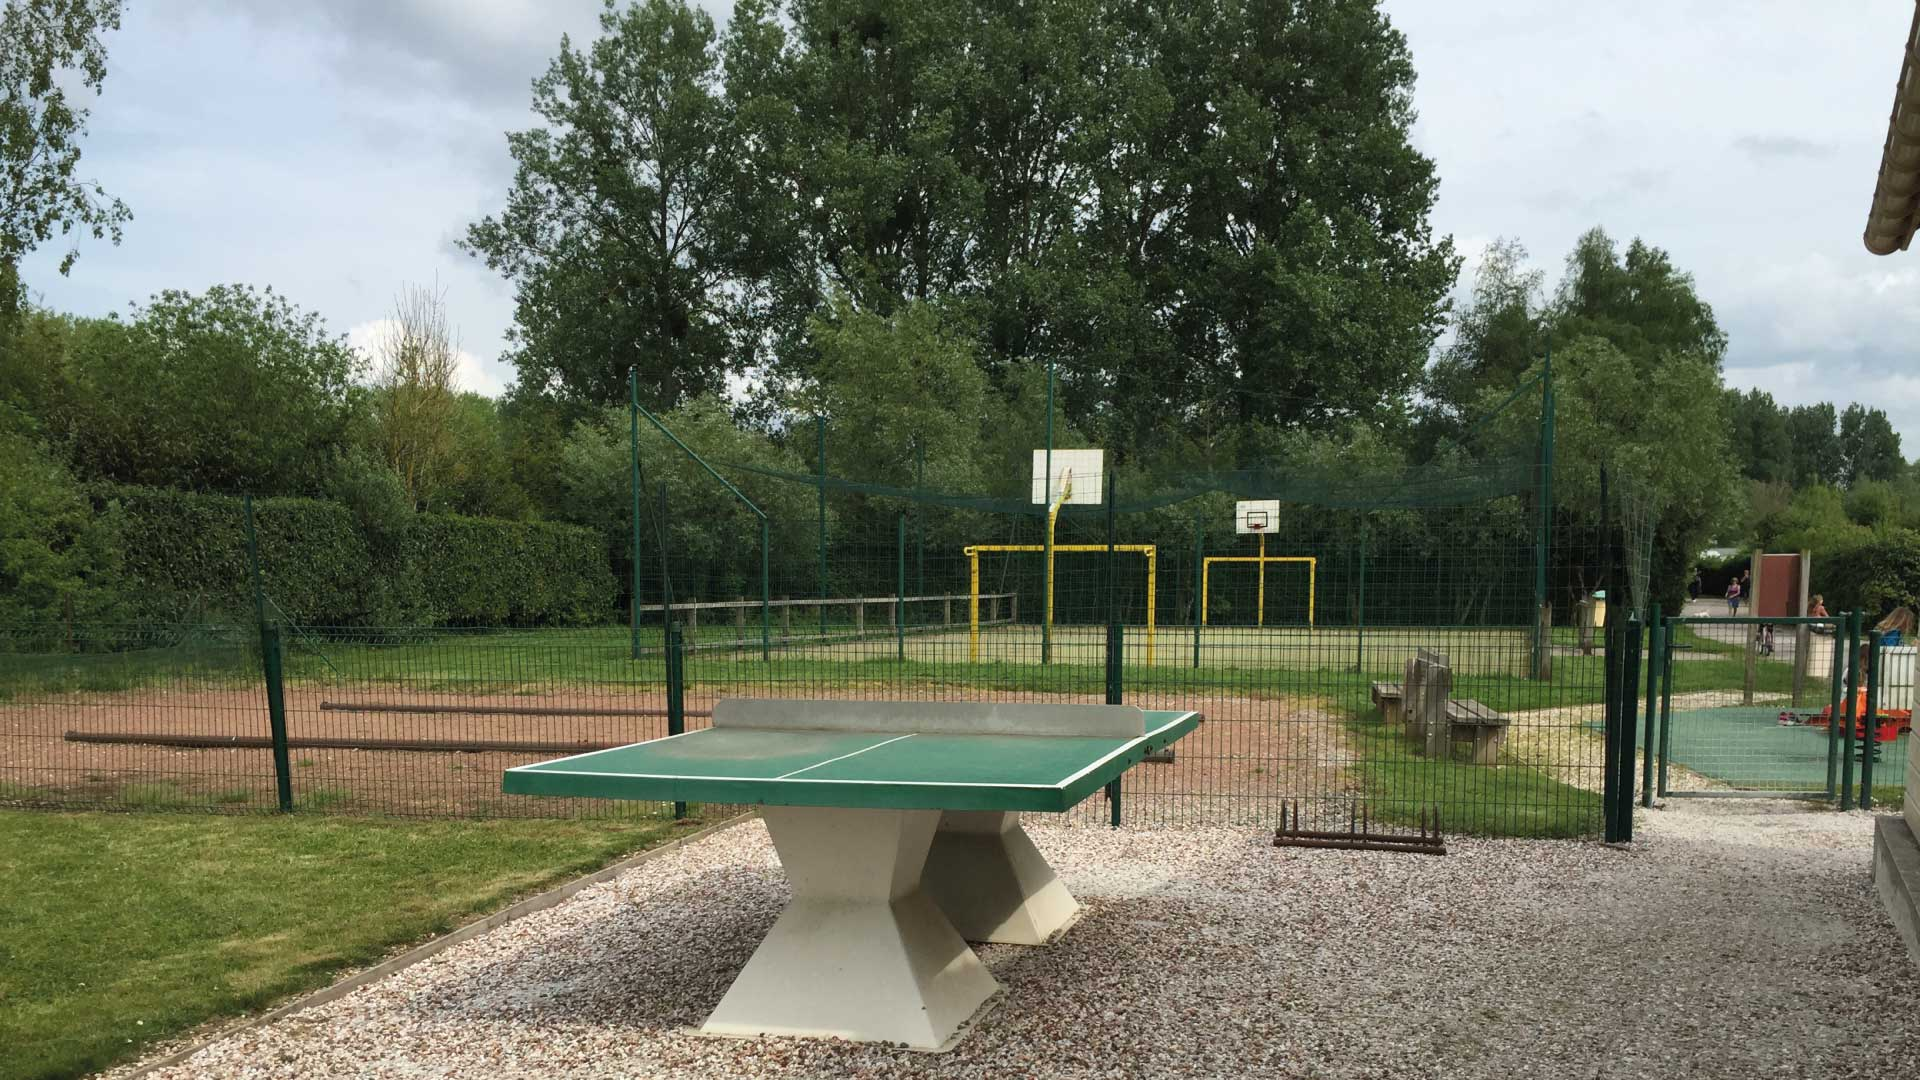 Terrain multisports - Camping du Molinel - Tortefontaine